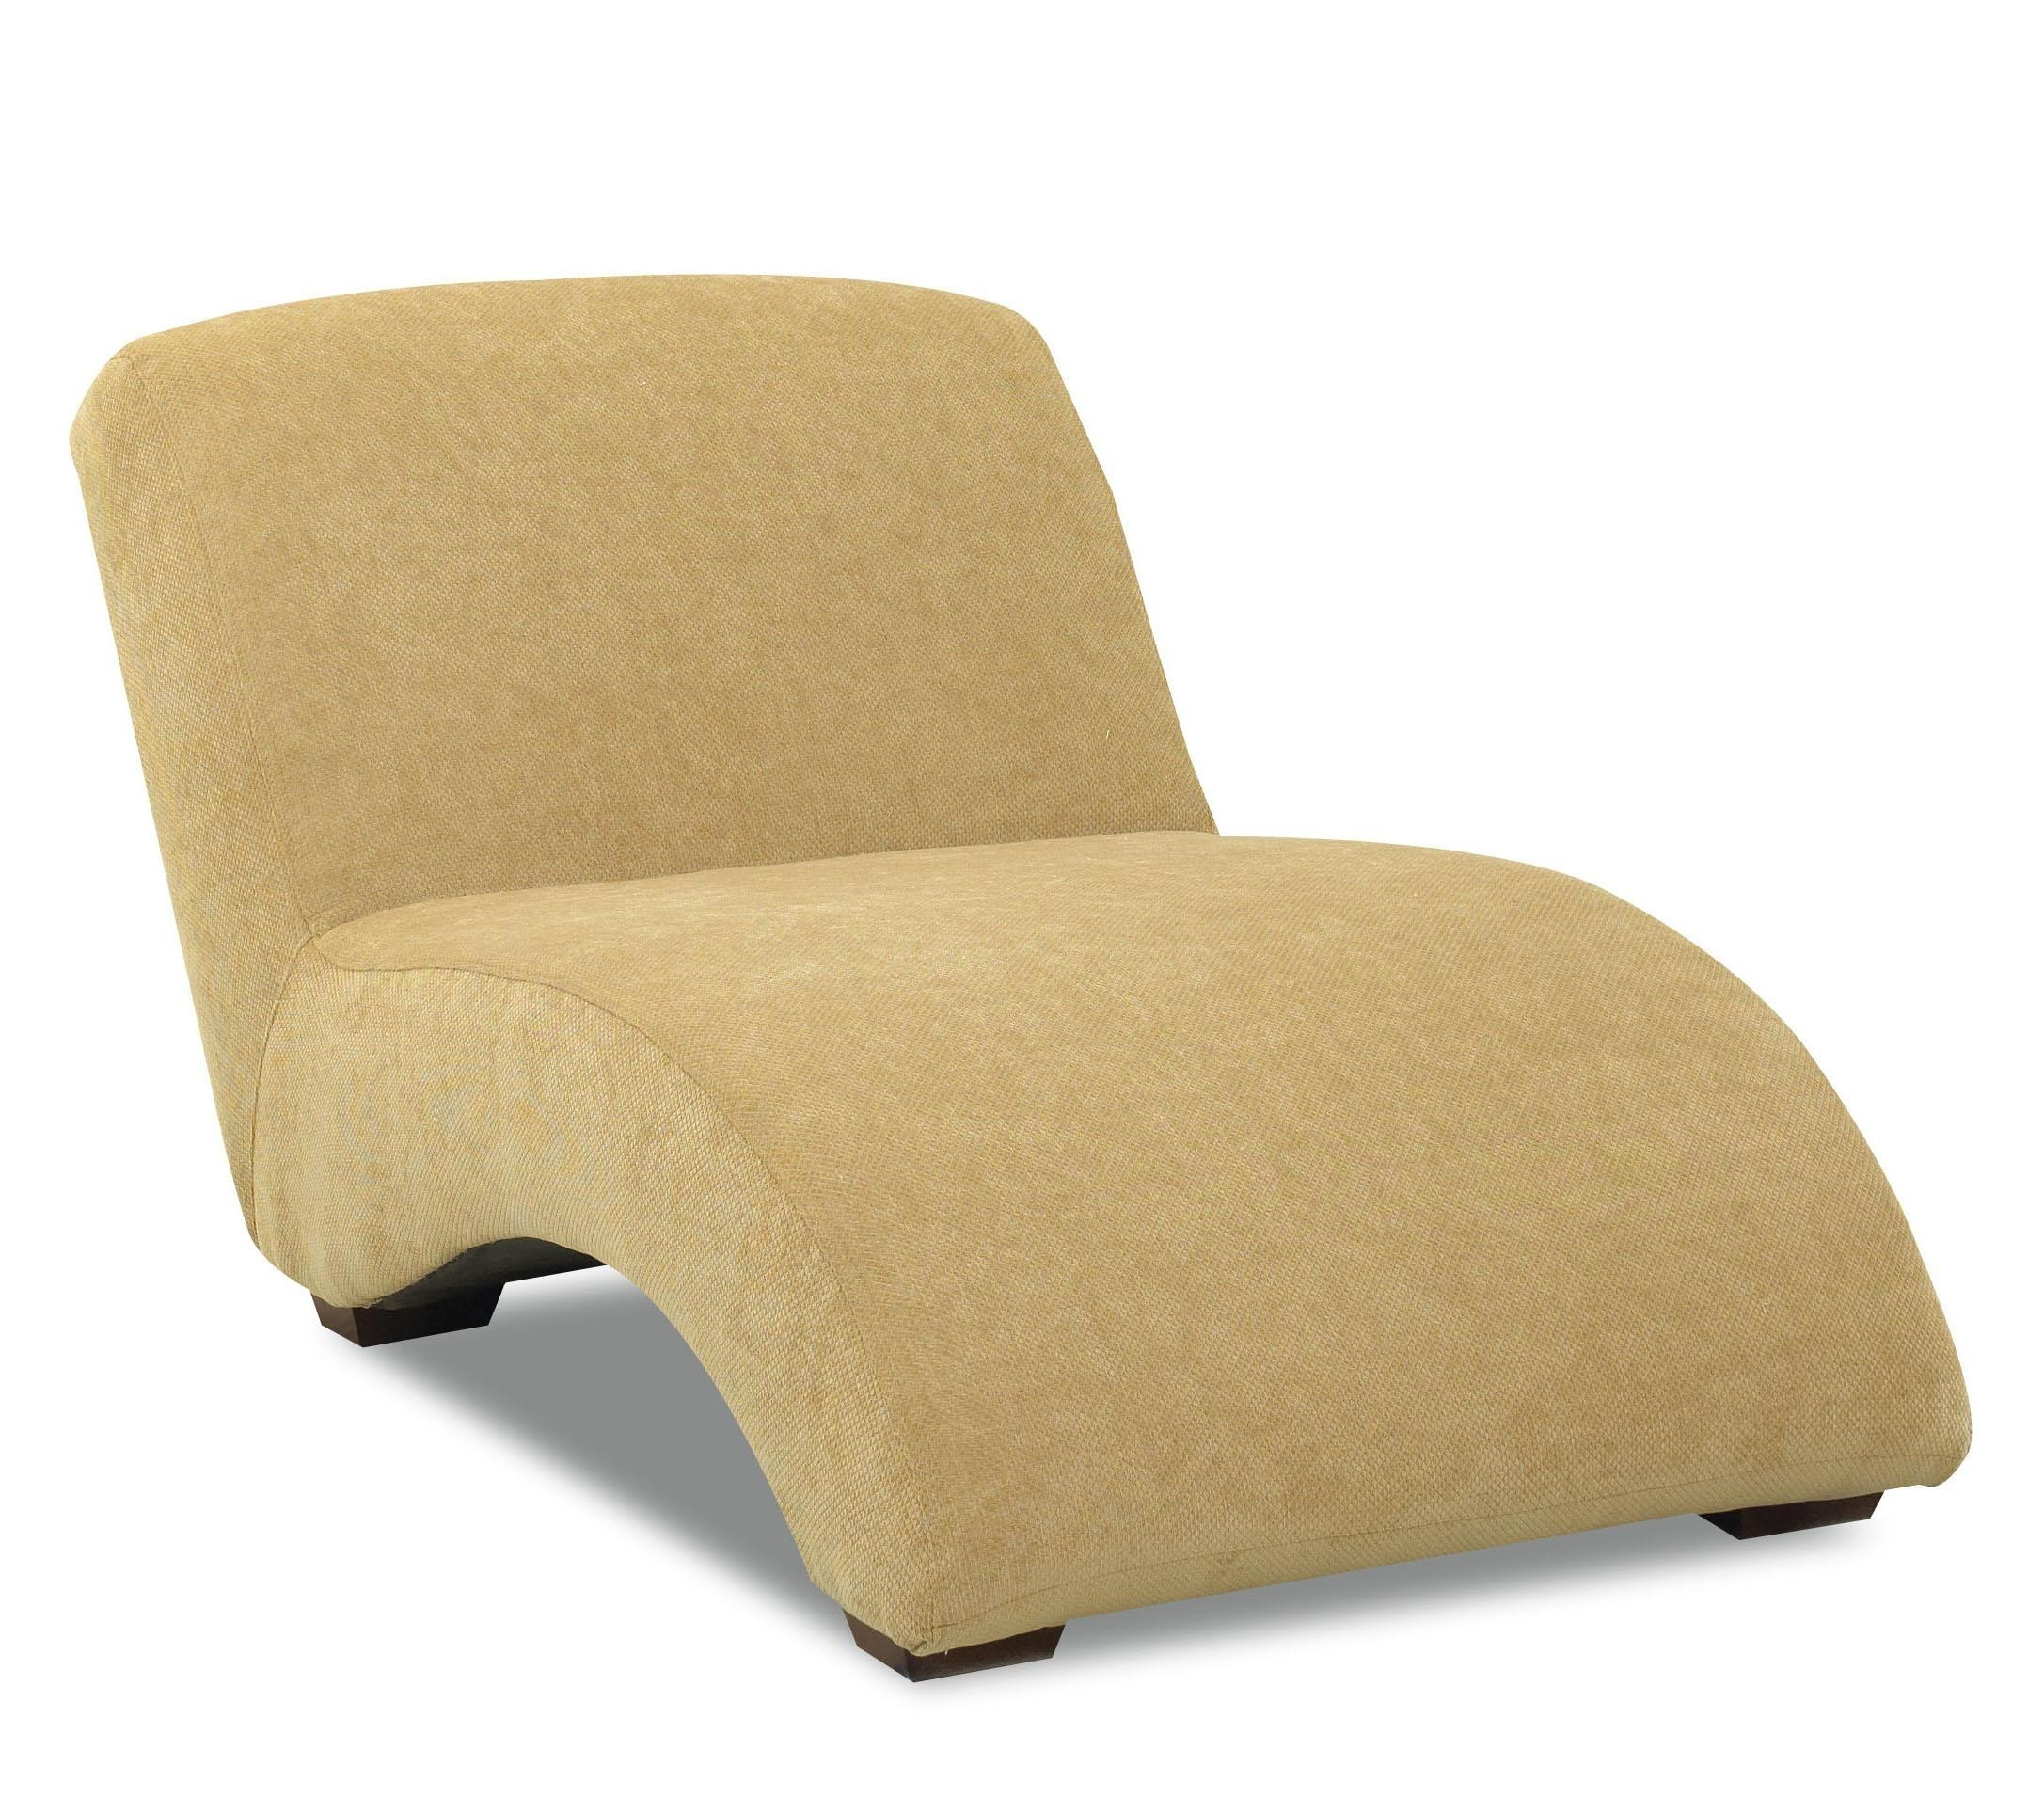 Slipcovers For Armless Lounge Chairs | Lounge Chairs And Office Chairs With Regard To Armless Slipcovers (View 15 of 20)